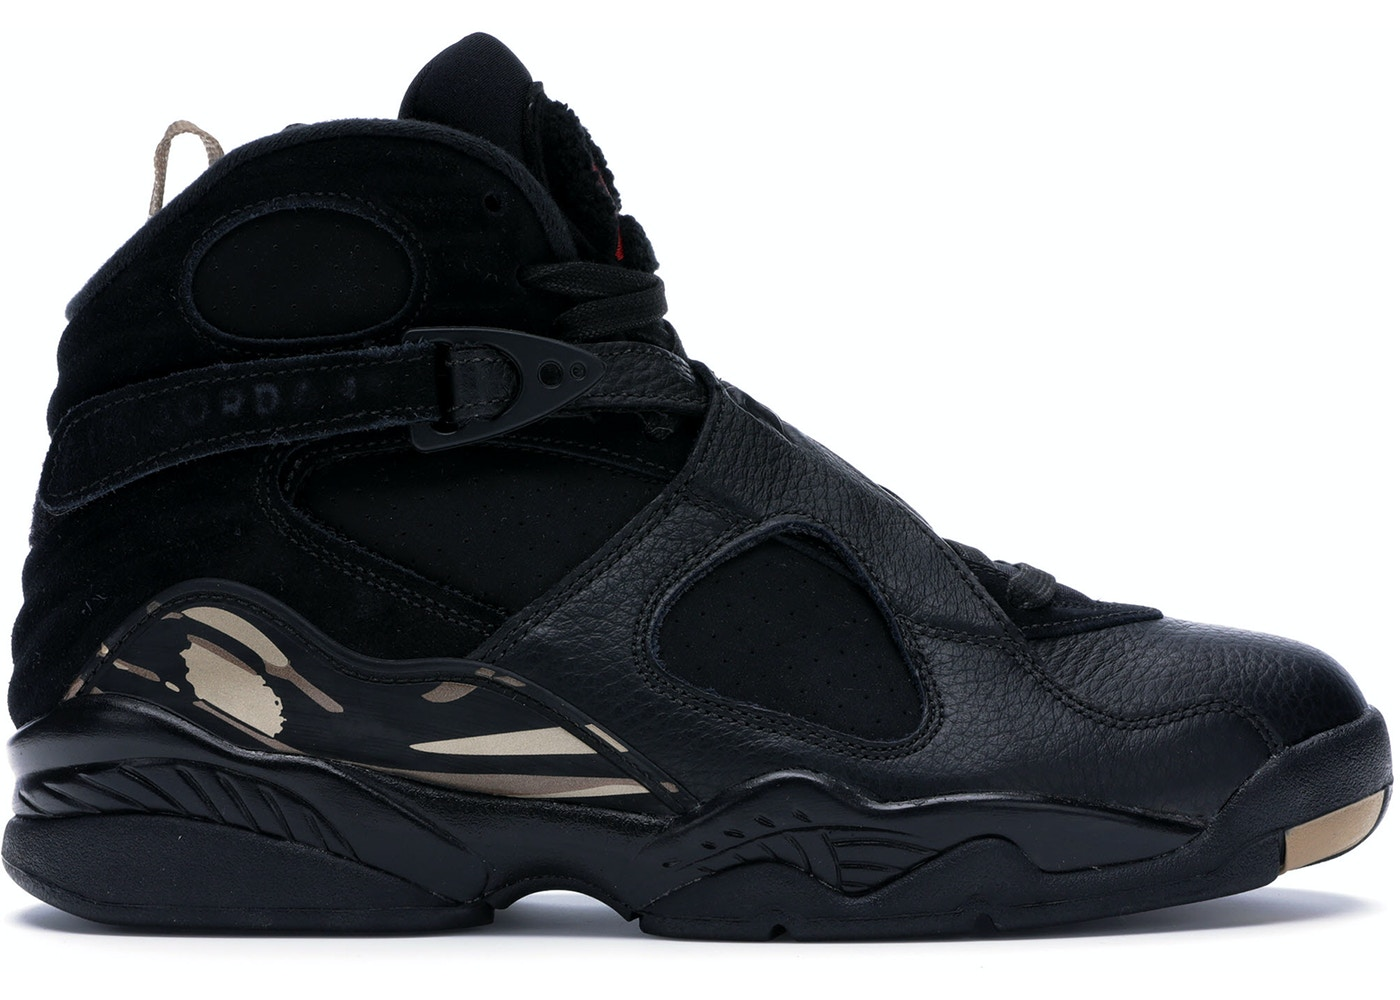 b66ac2df71c29 Buy Air Jordan 8 Shoes & Deadstock Sneakers